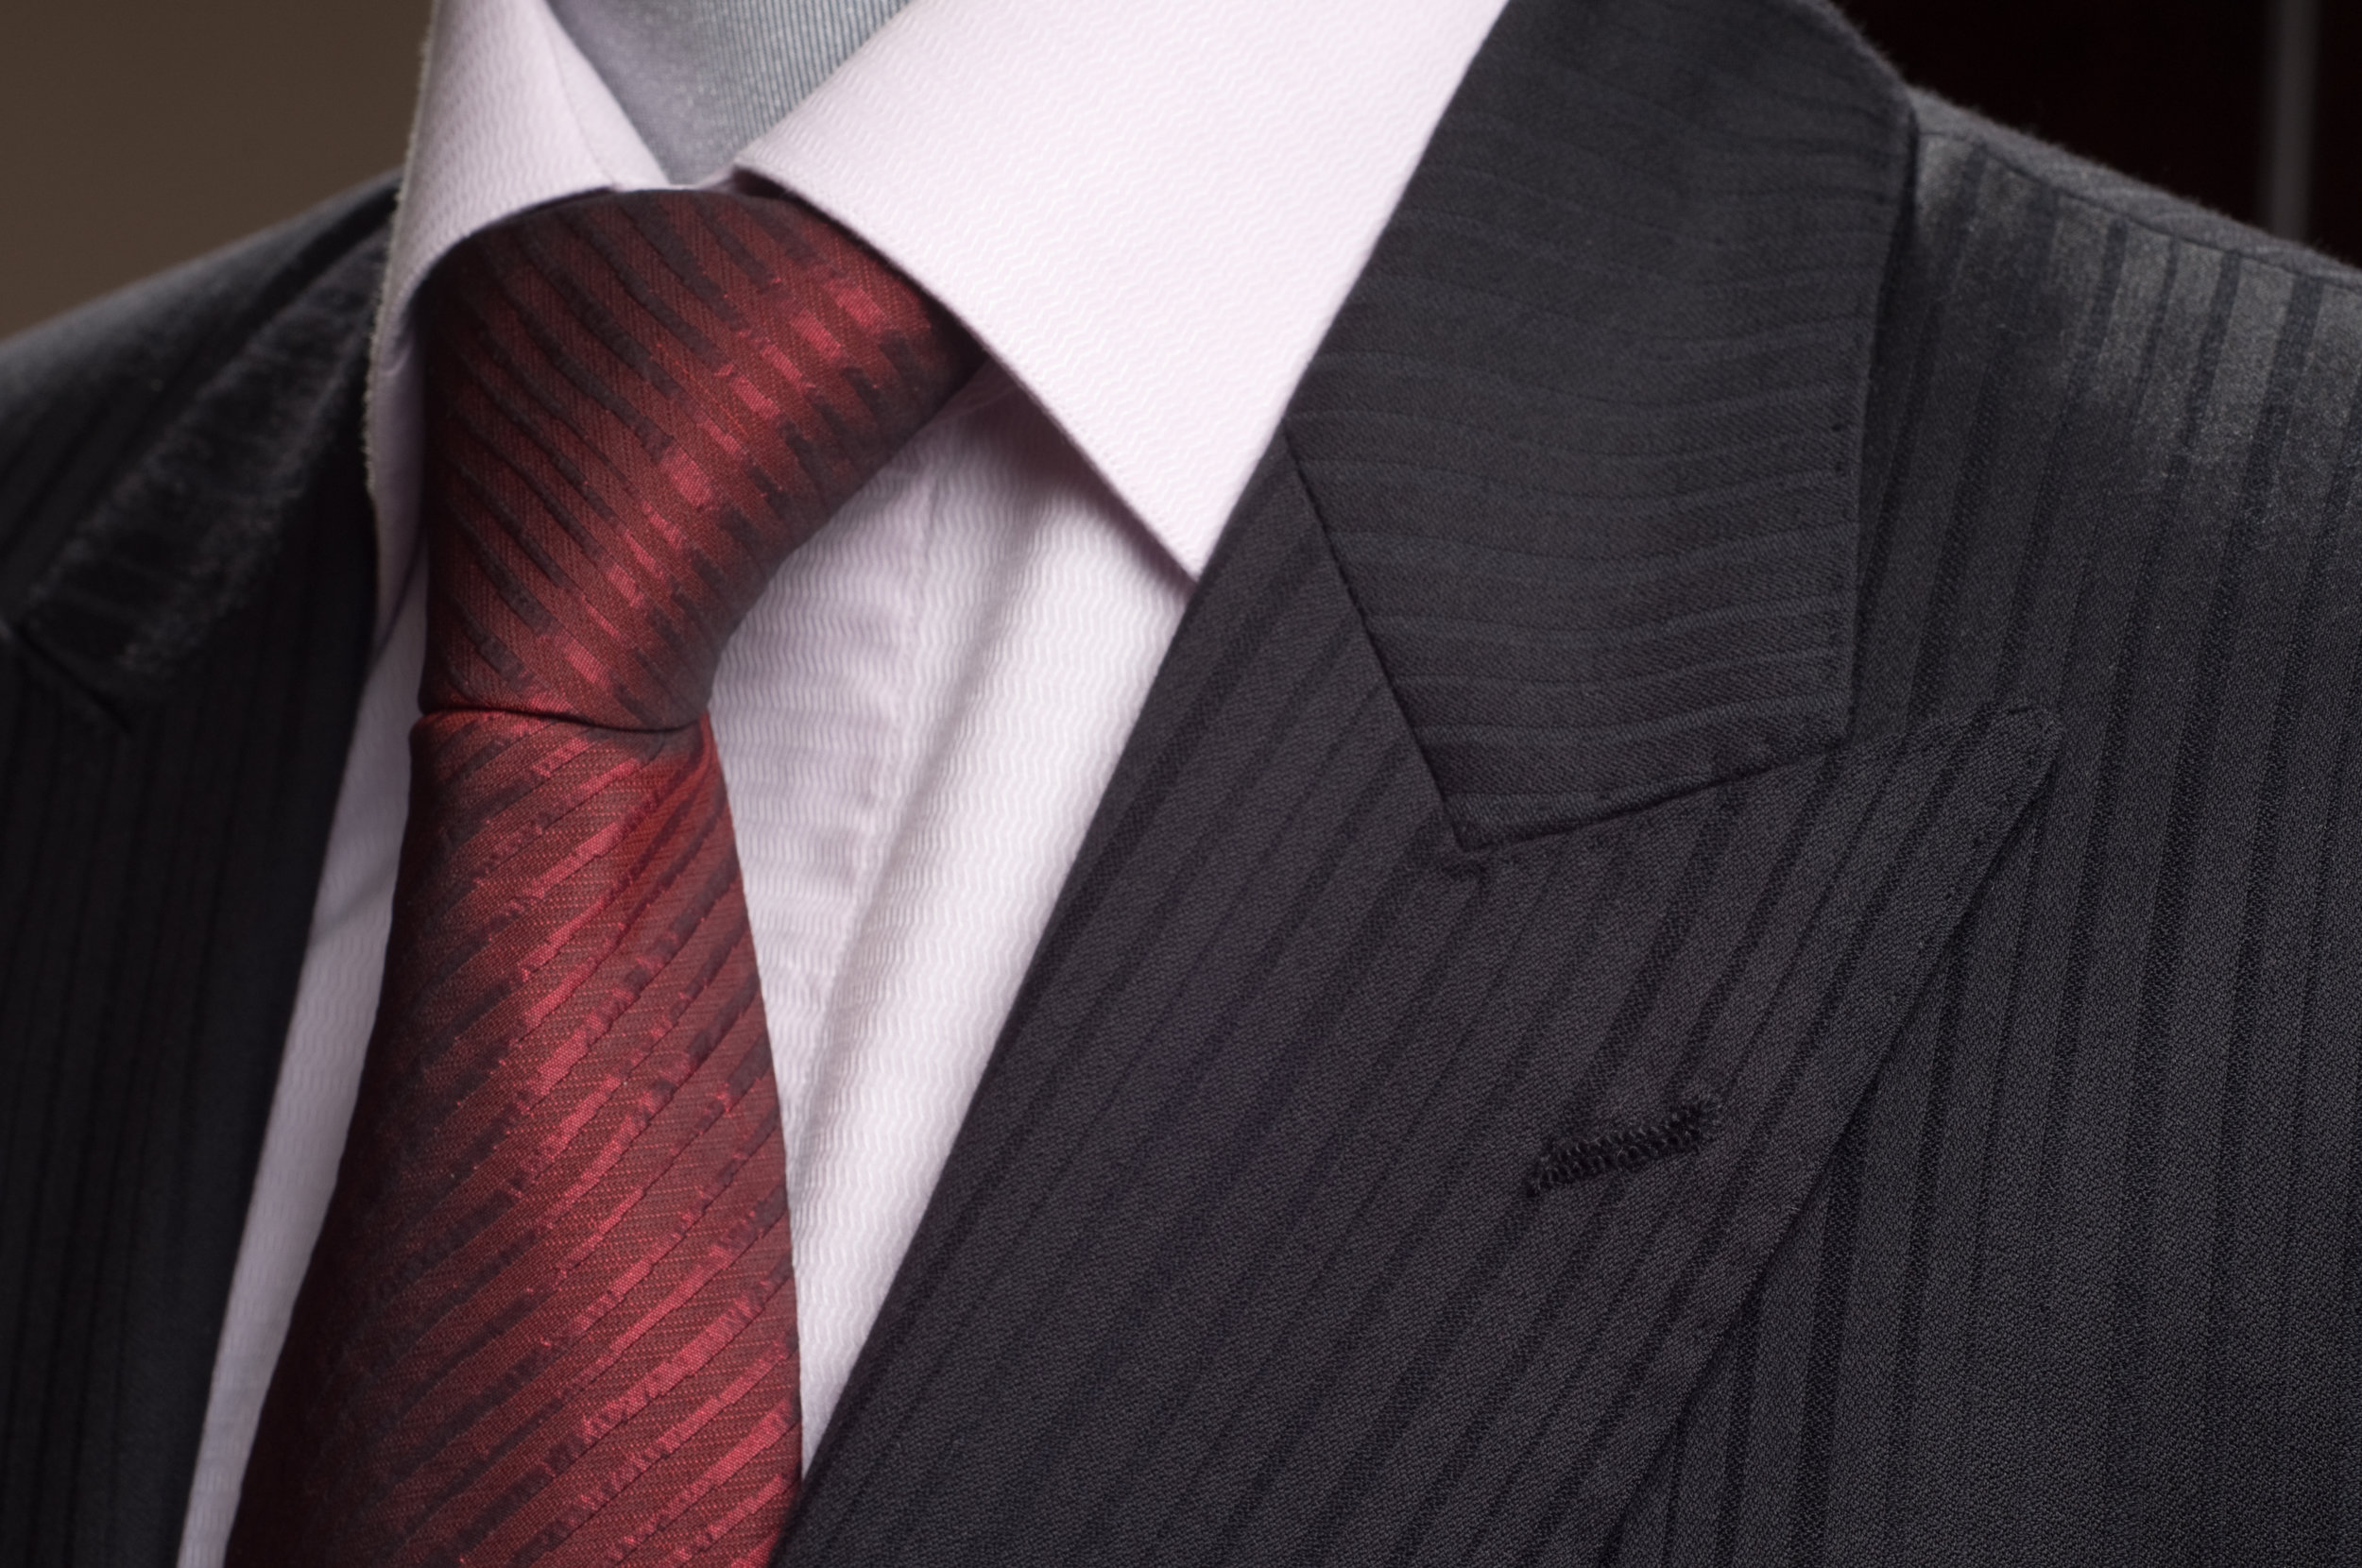 Peak lapels are known for their tips pointed toward the shoulders. They are considered to be a more formal style and are standard on, but certainly not limited to, double breasted jackets and tuxedos. They are now common in business formal wear as well. Peak lapels can add to the illusion of broader shoulders and increased height. Their lengthening effect often results in a slimmer look. The lapel width is determined by a variety of factors and usually depends on current trends. Traditionally, however, the lapel extends for about half the shoulder width. Ultimately, a proper, tailored fit customized to your proportions is the best way to guarantee a dapper and timeless look.